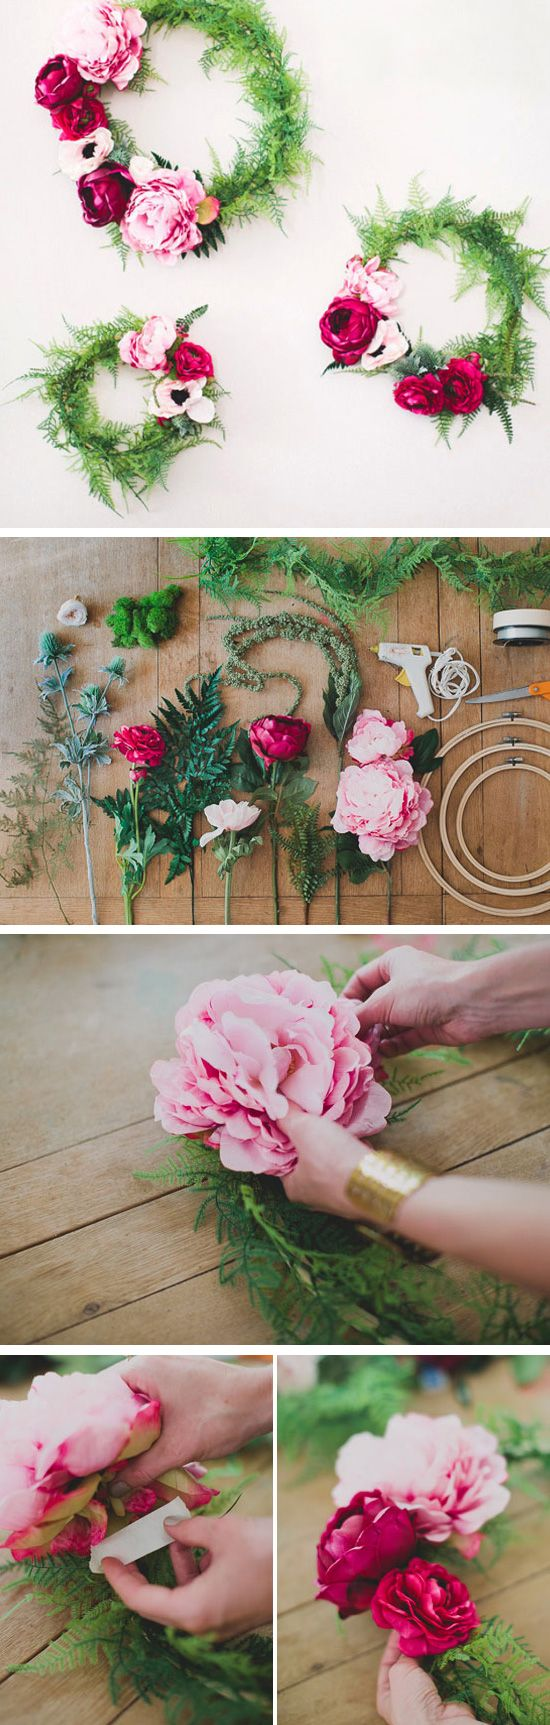 DIY Silk Flower Wreath | Click Pic for 24 DIY Spring Wedding Ideas on a Budget | DIY Spring Wedding Flowers Ideas